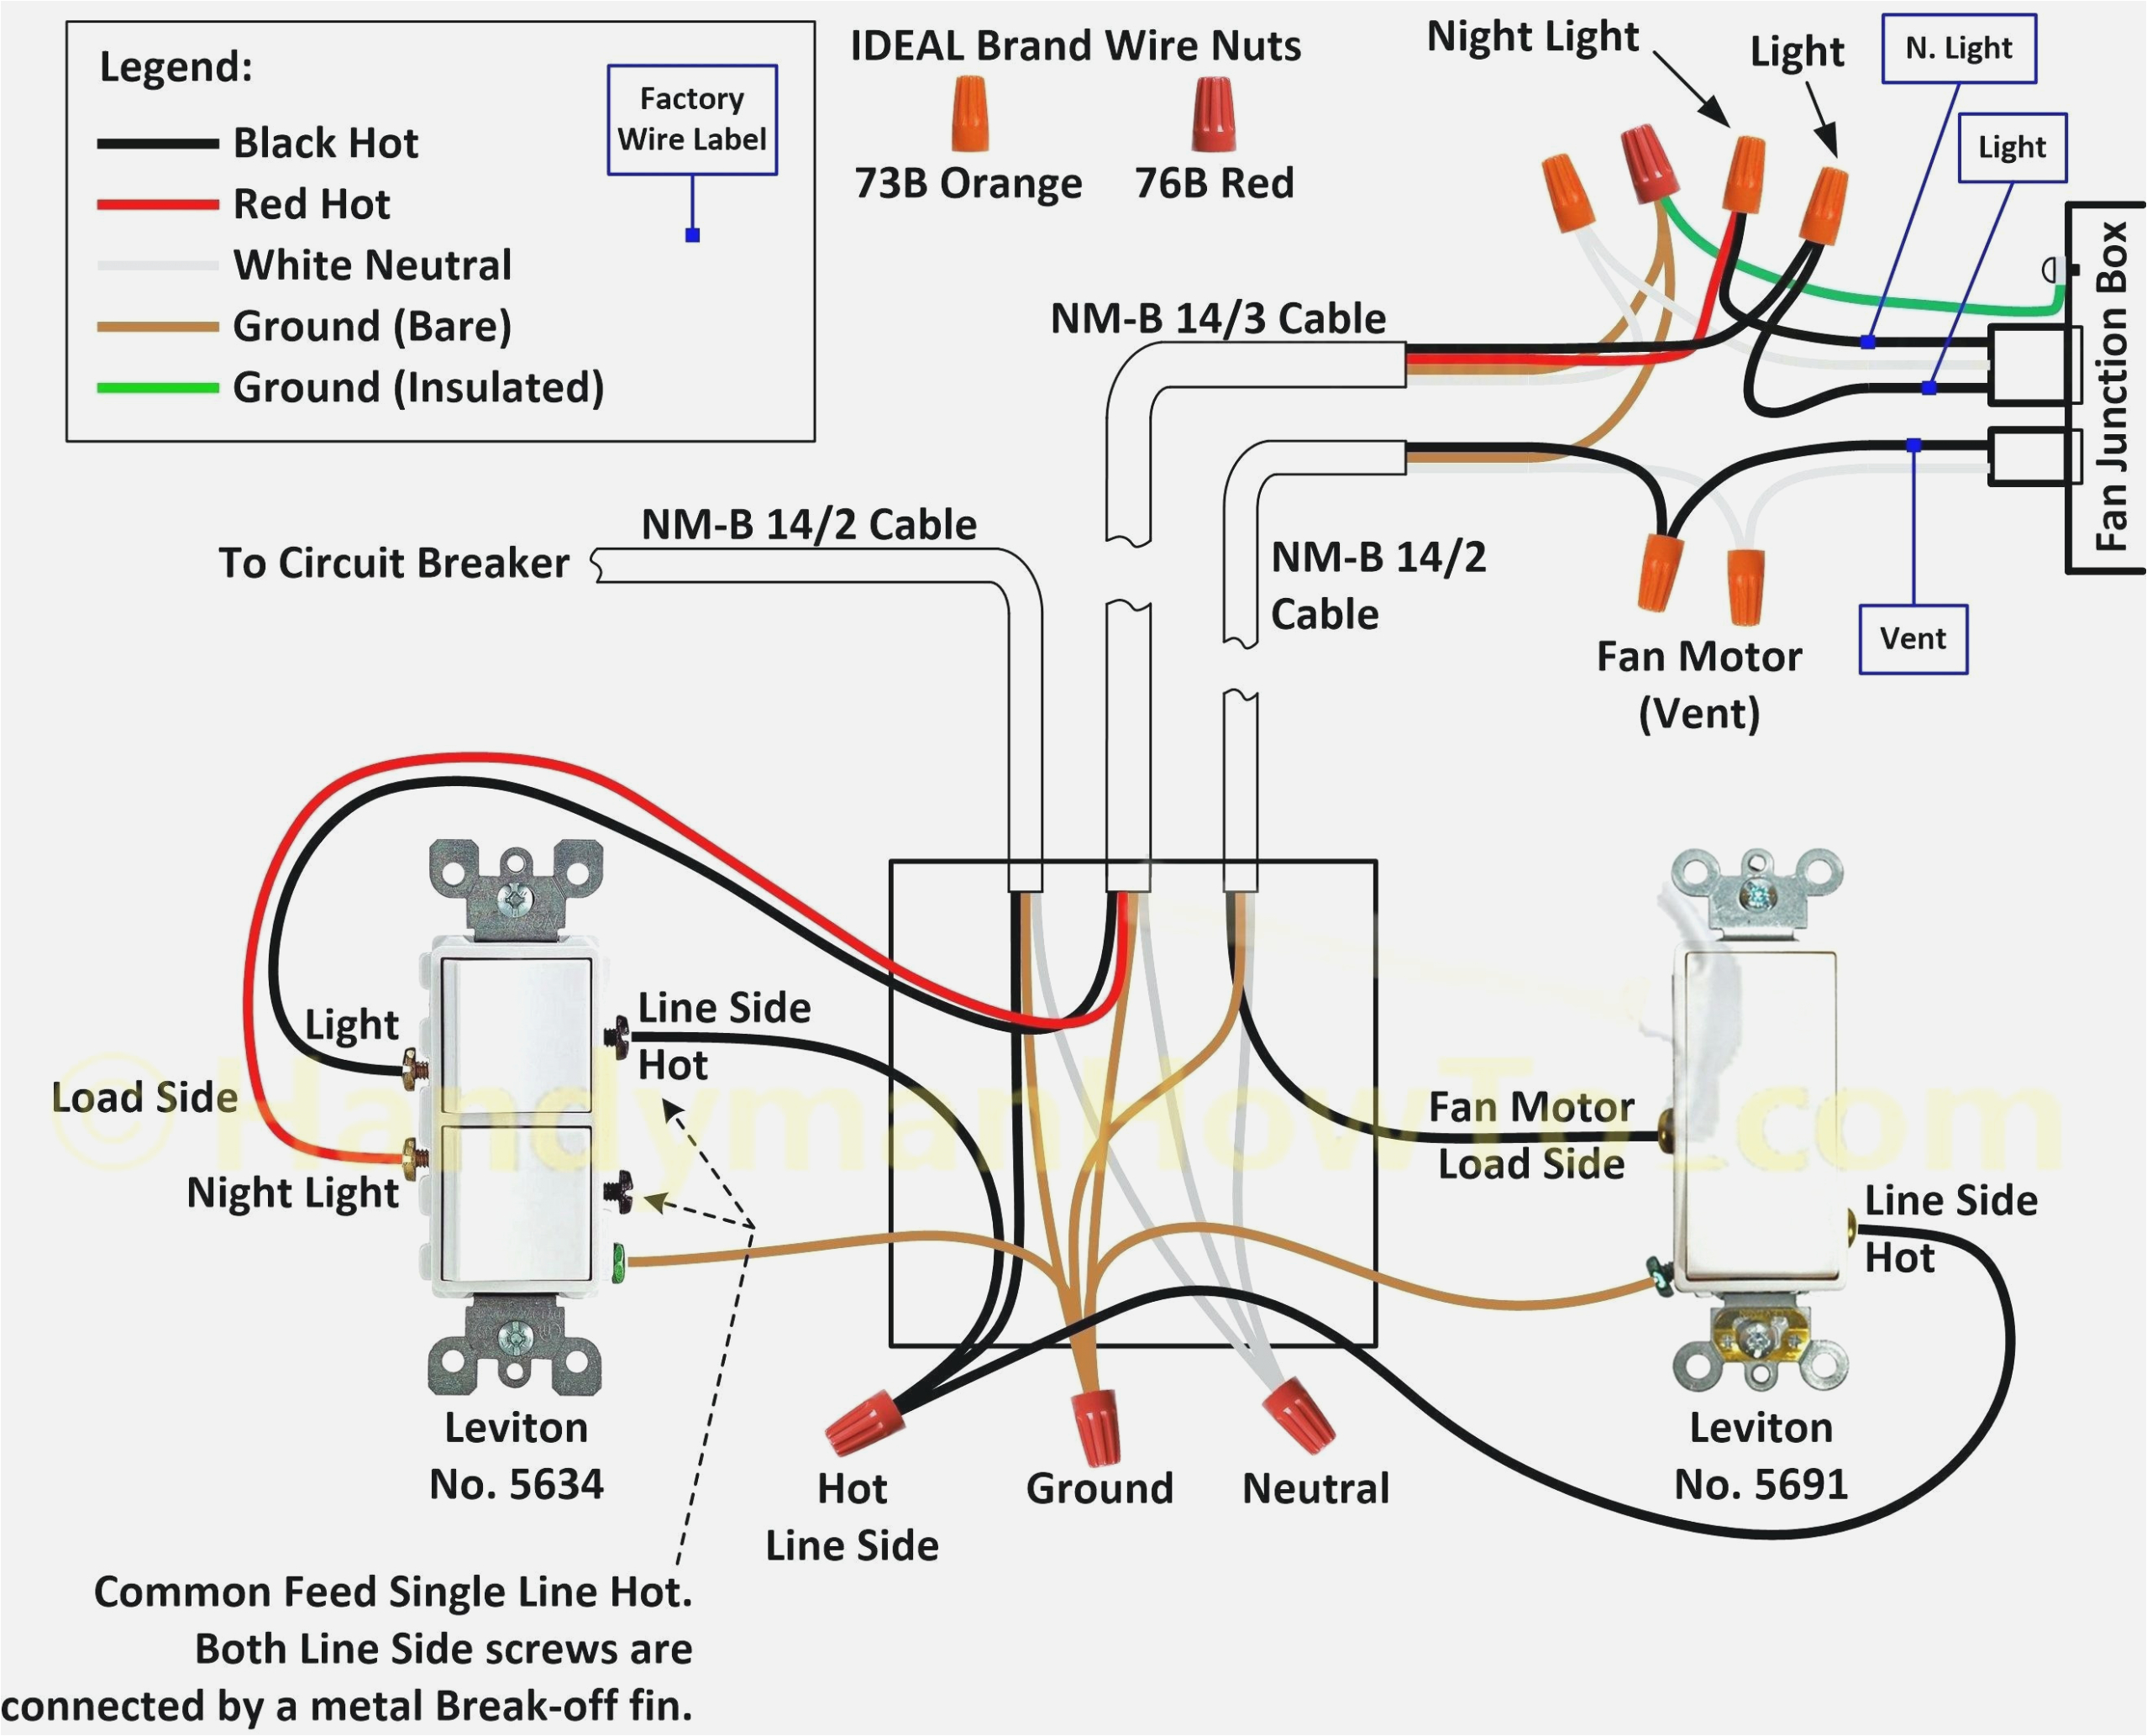 lutron dimmer wiring diagram reference lutron 10 way dimmer switch lutron 3 way dimmer switch wiring diagram png